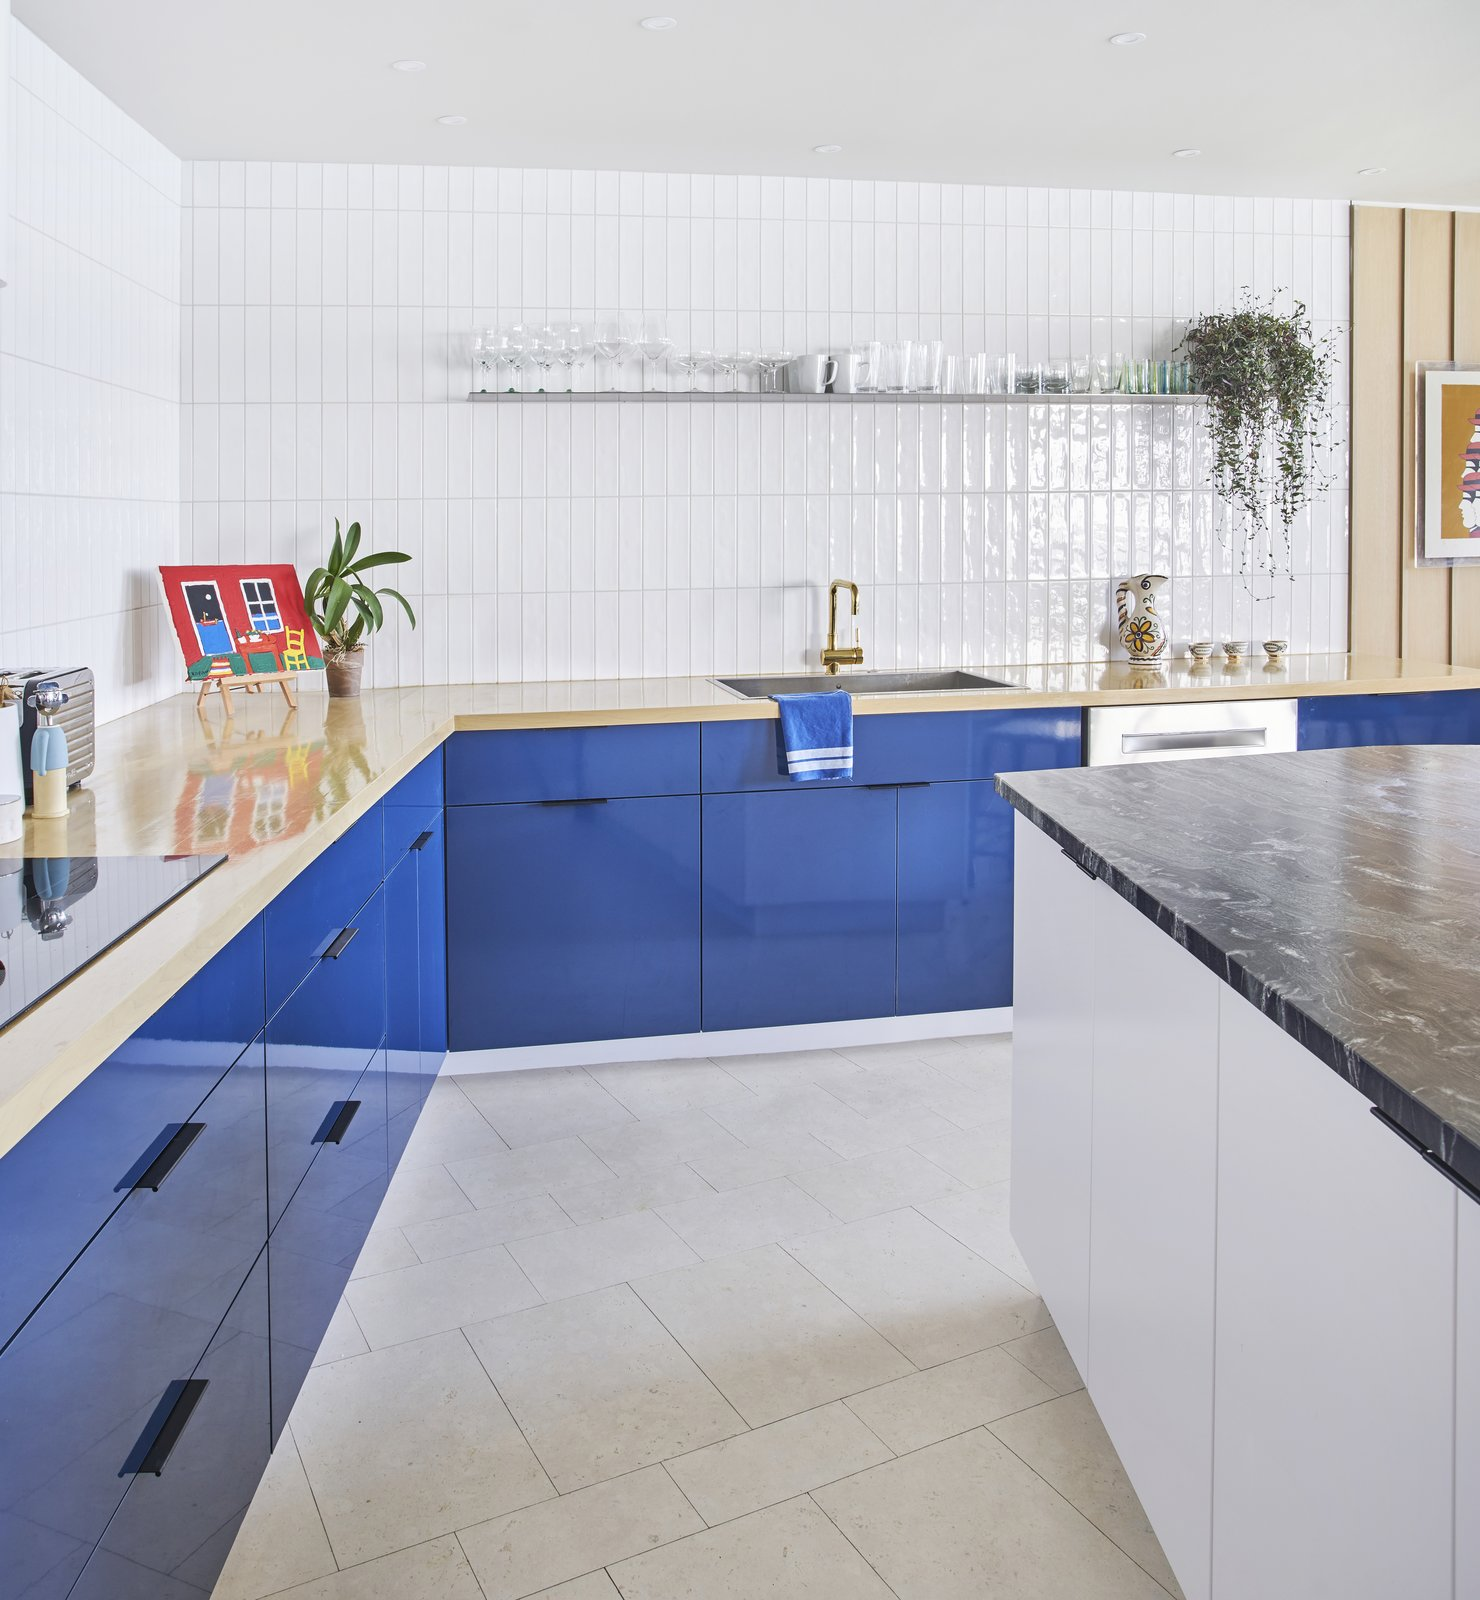 6 Kitchen Flooring Options to Consider For Your Next Renovation ...